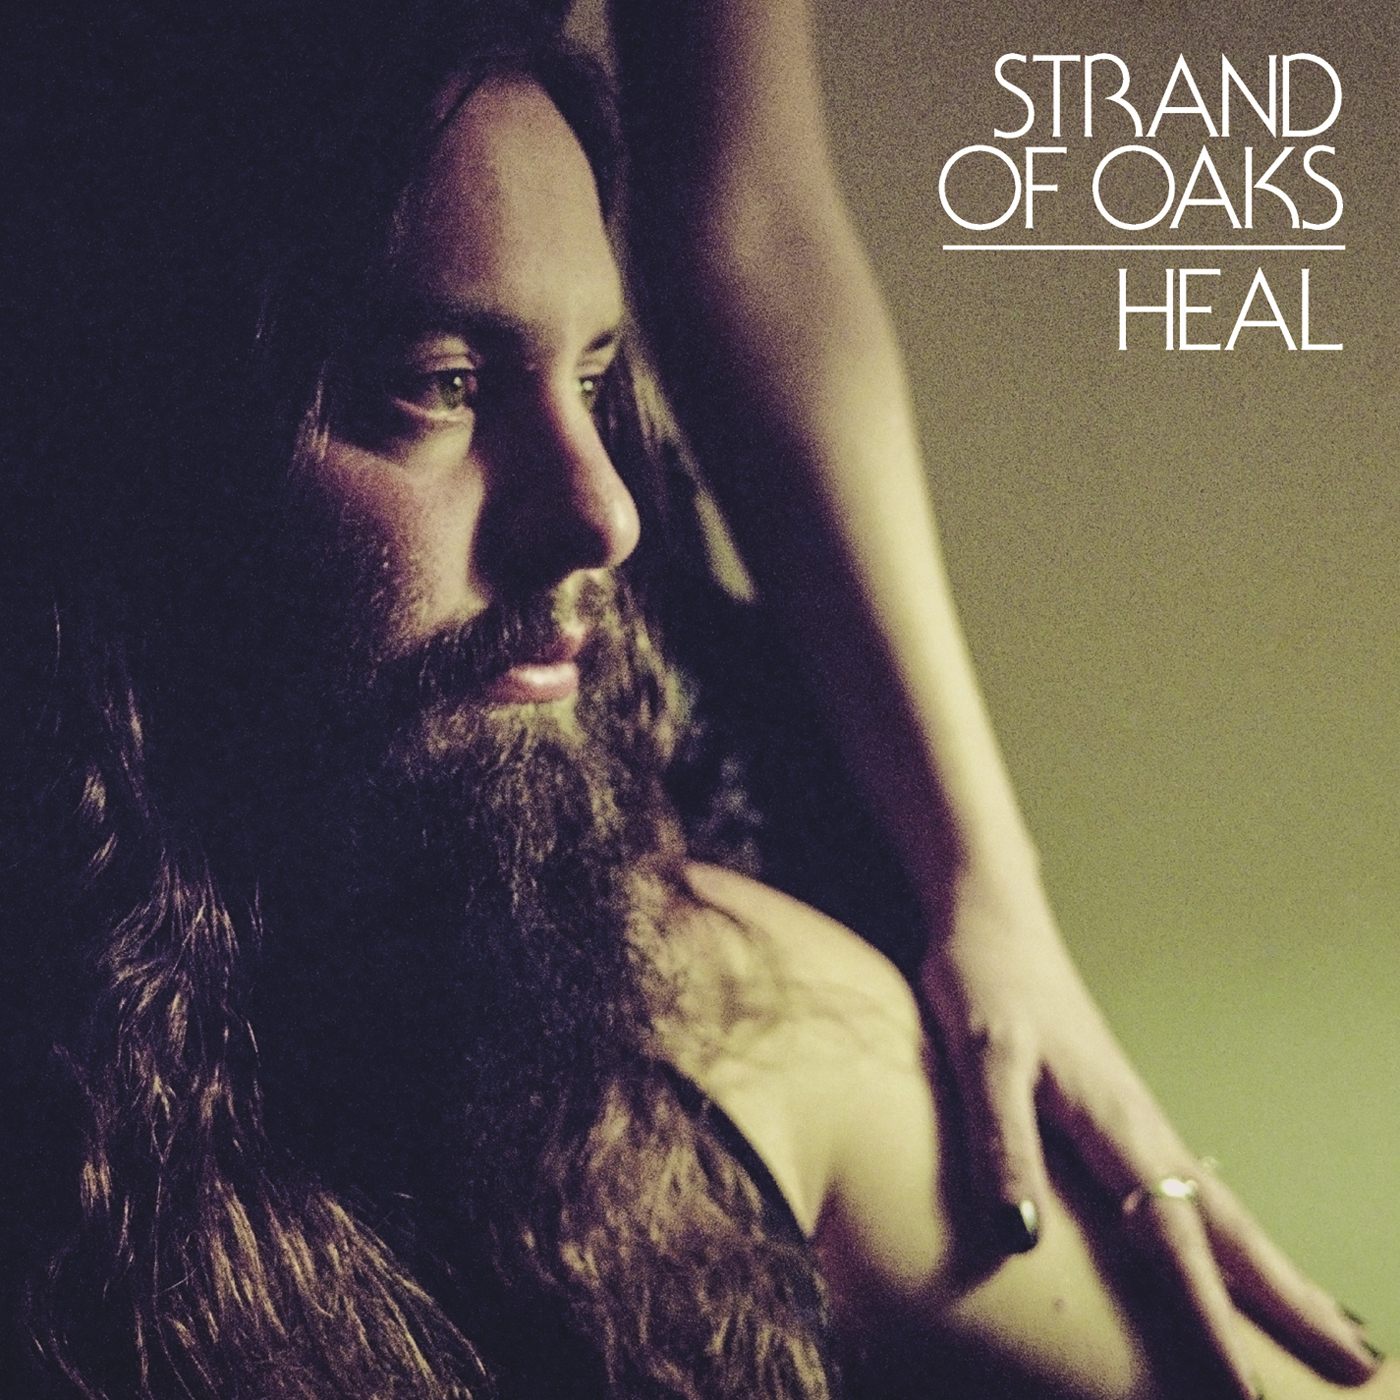 Strand Of Oaks' Heal is out now.